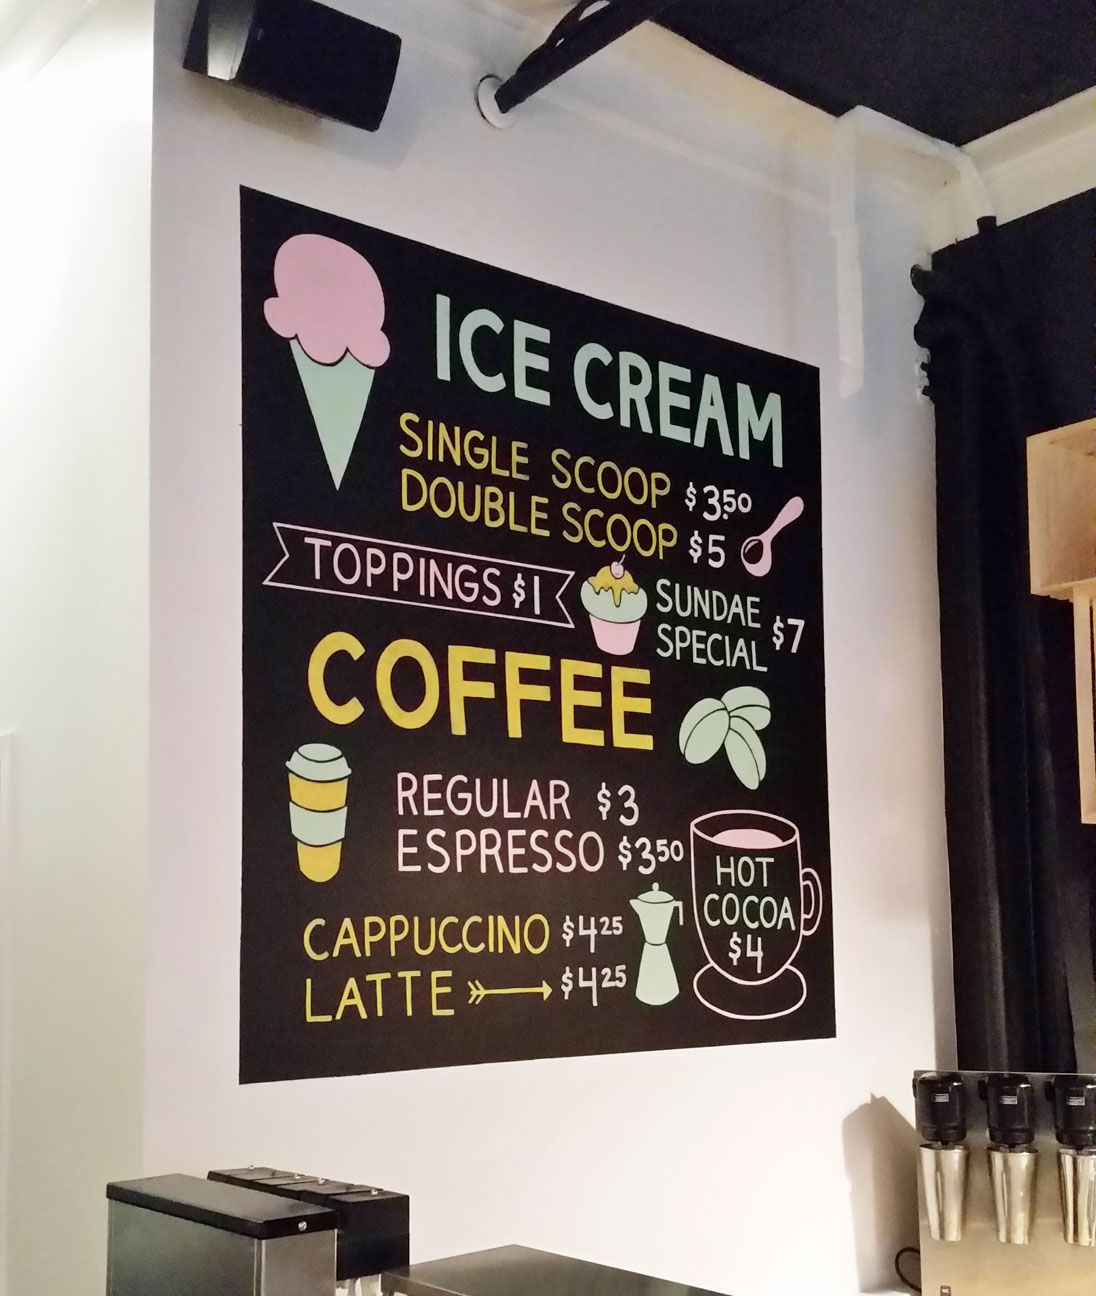 Hand Painted Chalkboard Ice Cream Menu For Ice Cream Shop In Lake